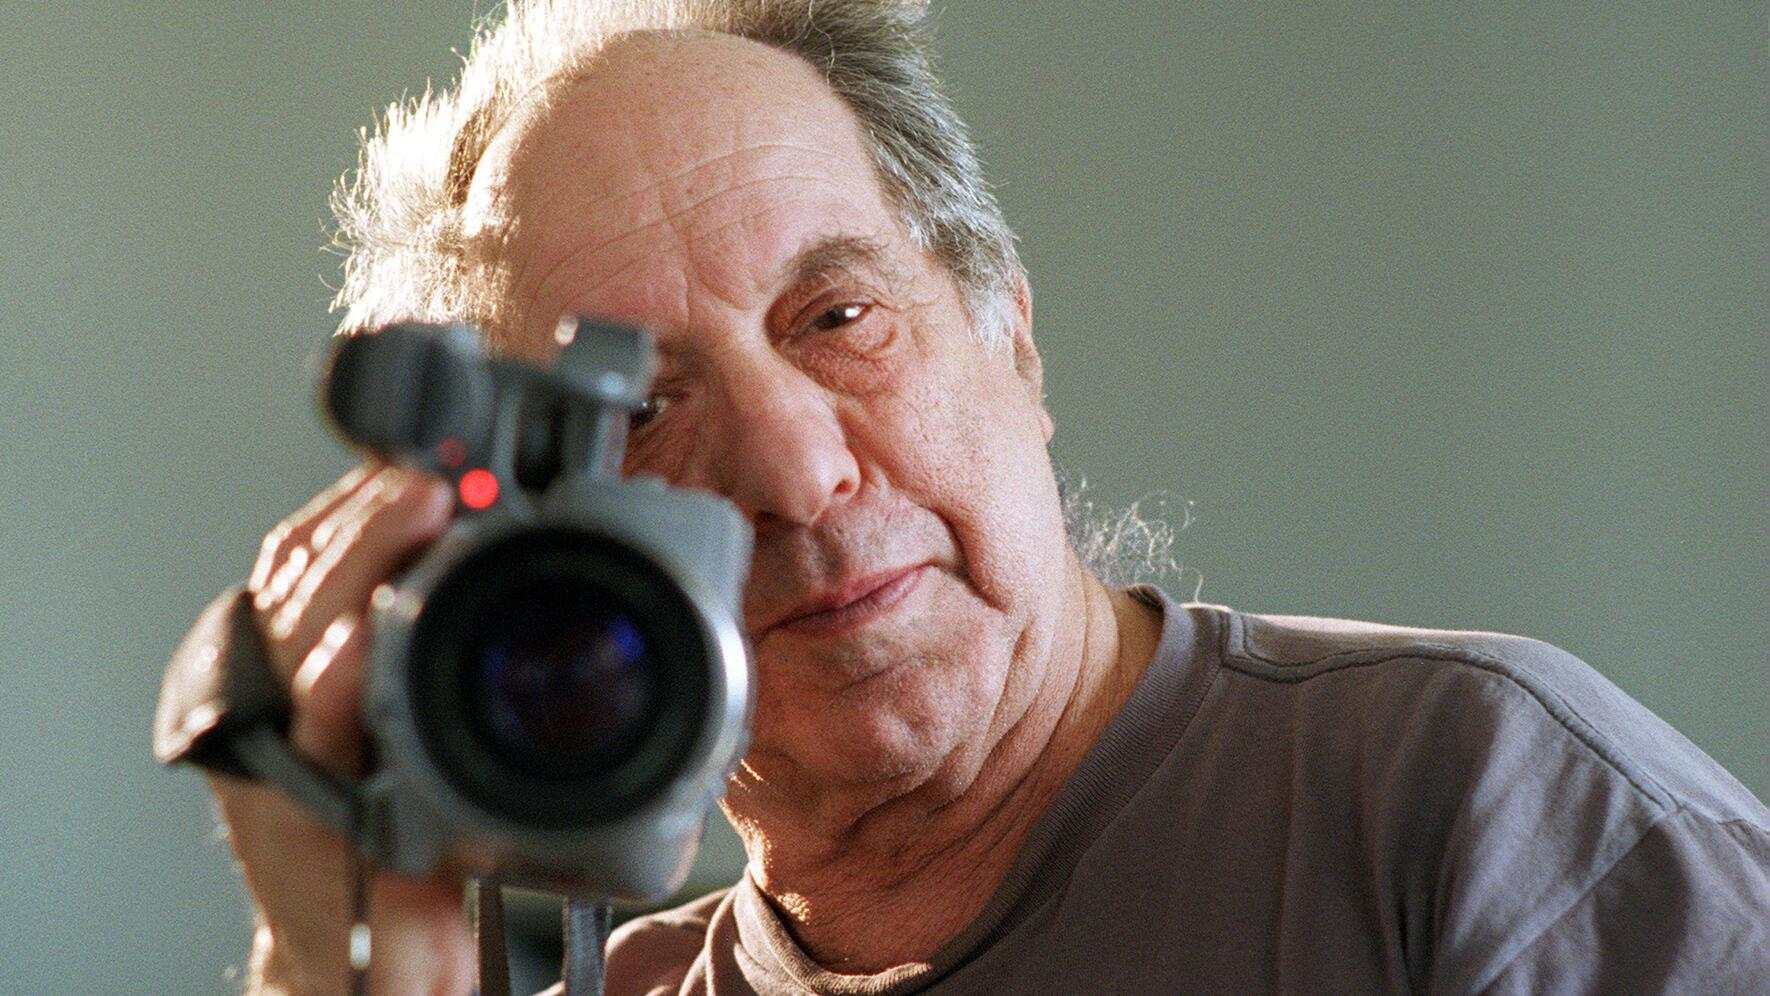 CA.Frank.#3.PD.3–1: photograph of reknowned photographer/filmaker Robert Frank, as he videos the photographer shooting him. Frank is in LA for a major retrospective of his work at the Lannan Foundation. LATphoto: Patrick Downs  (Photo by Patrick Downs/Los Angeles Times via Getty Images)